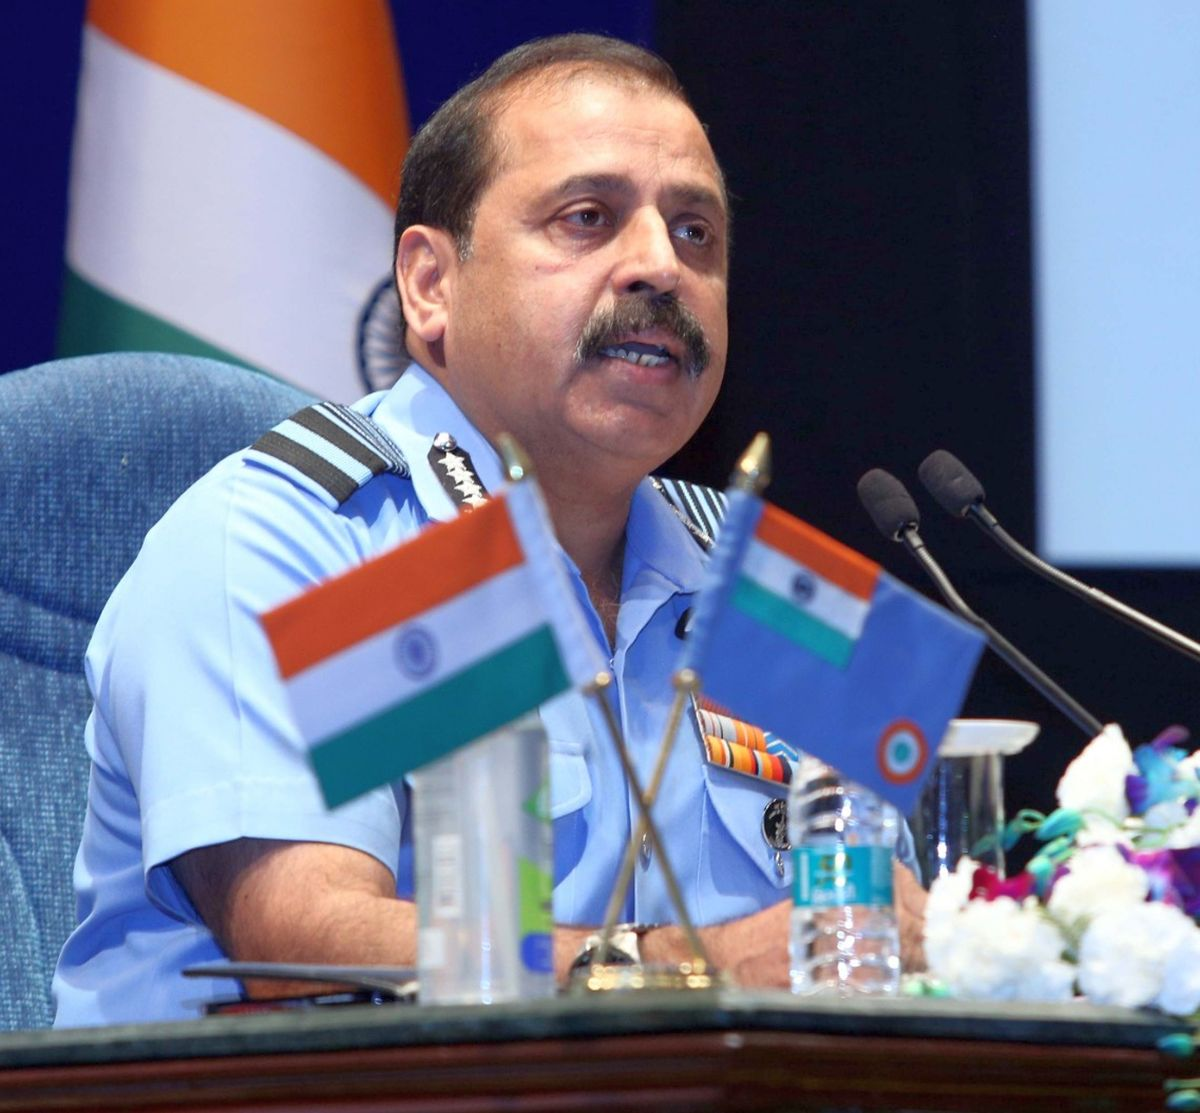 LAC row: IAF chief lauds 'air warriors' for response